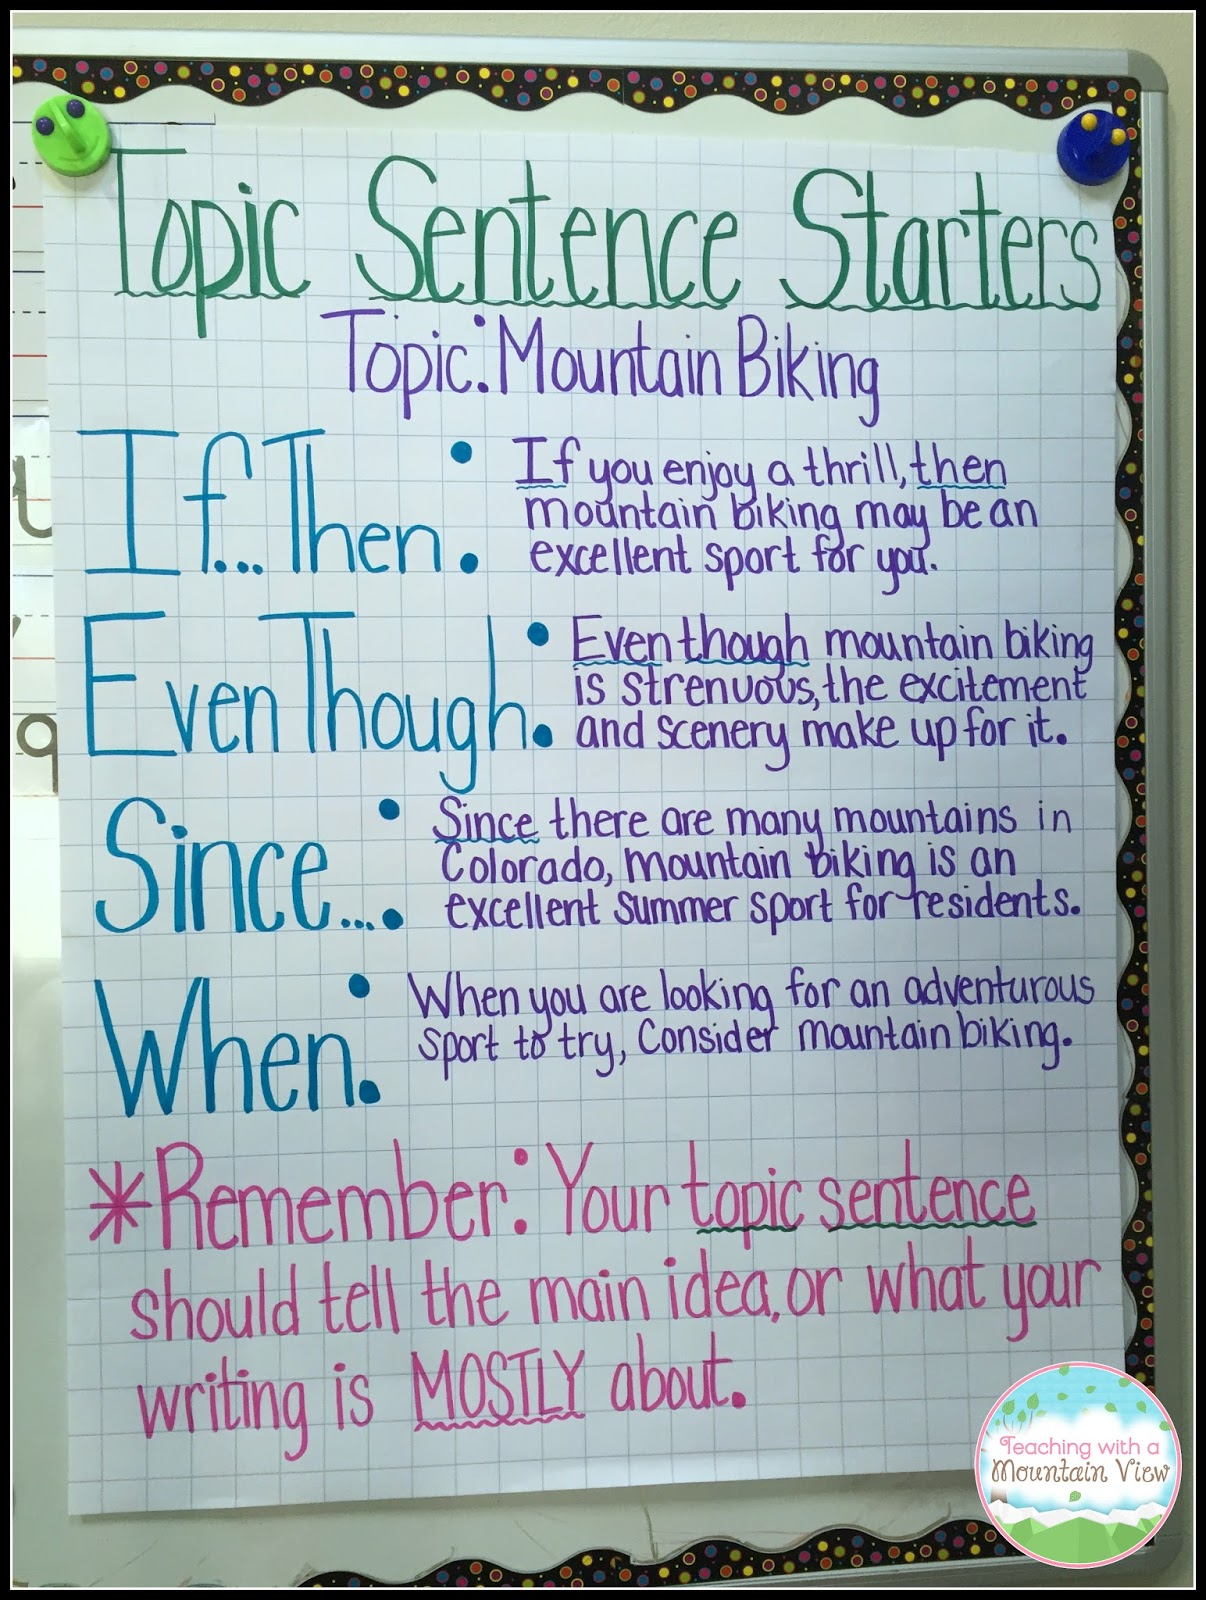 essay first sentence Library and learning services study guide | sentence starters www2eitacnz/library/onlineguides/sentence starterspdf to present prior or background ideas.